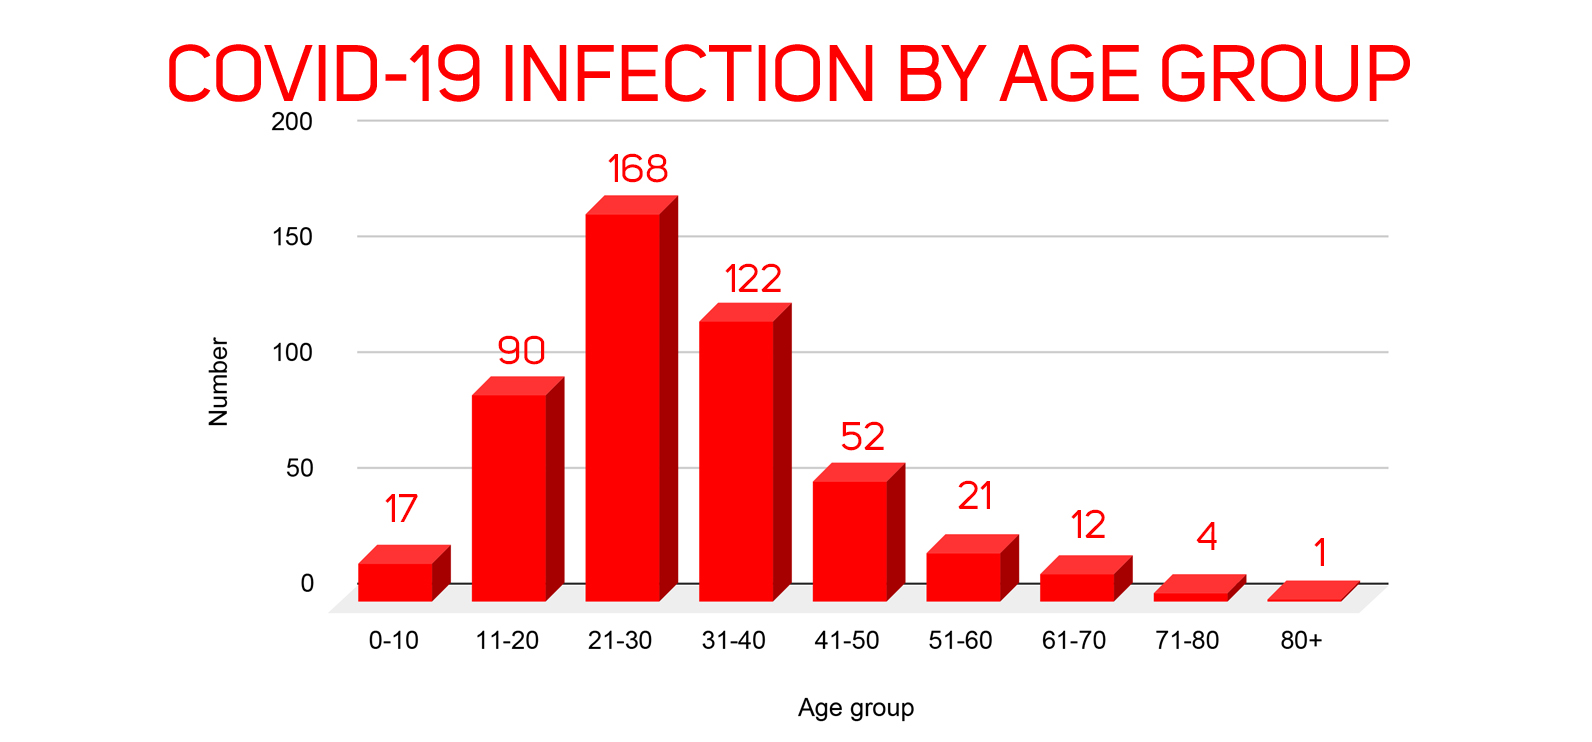 Most COVID-19 patients in Nepal are males under 30